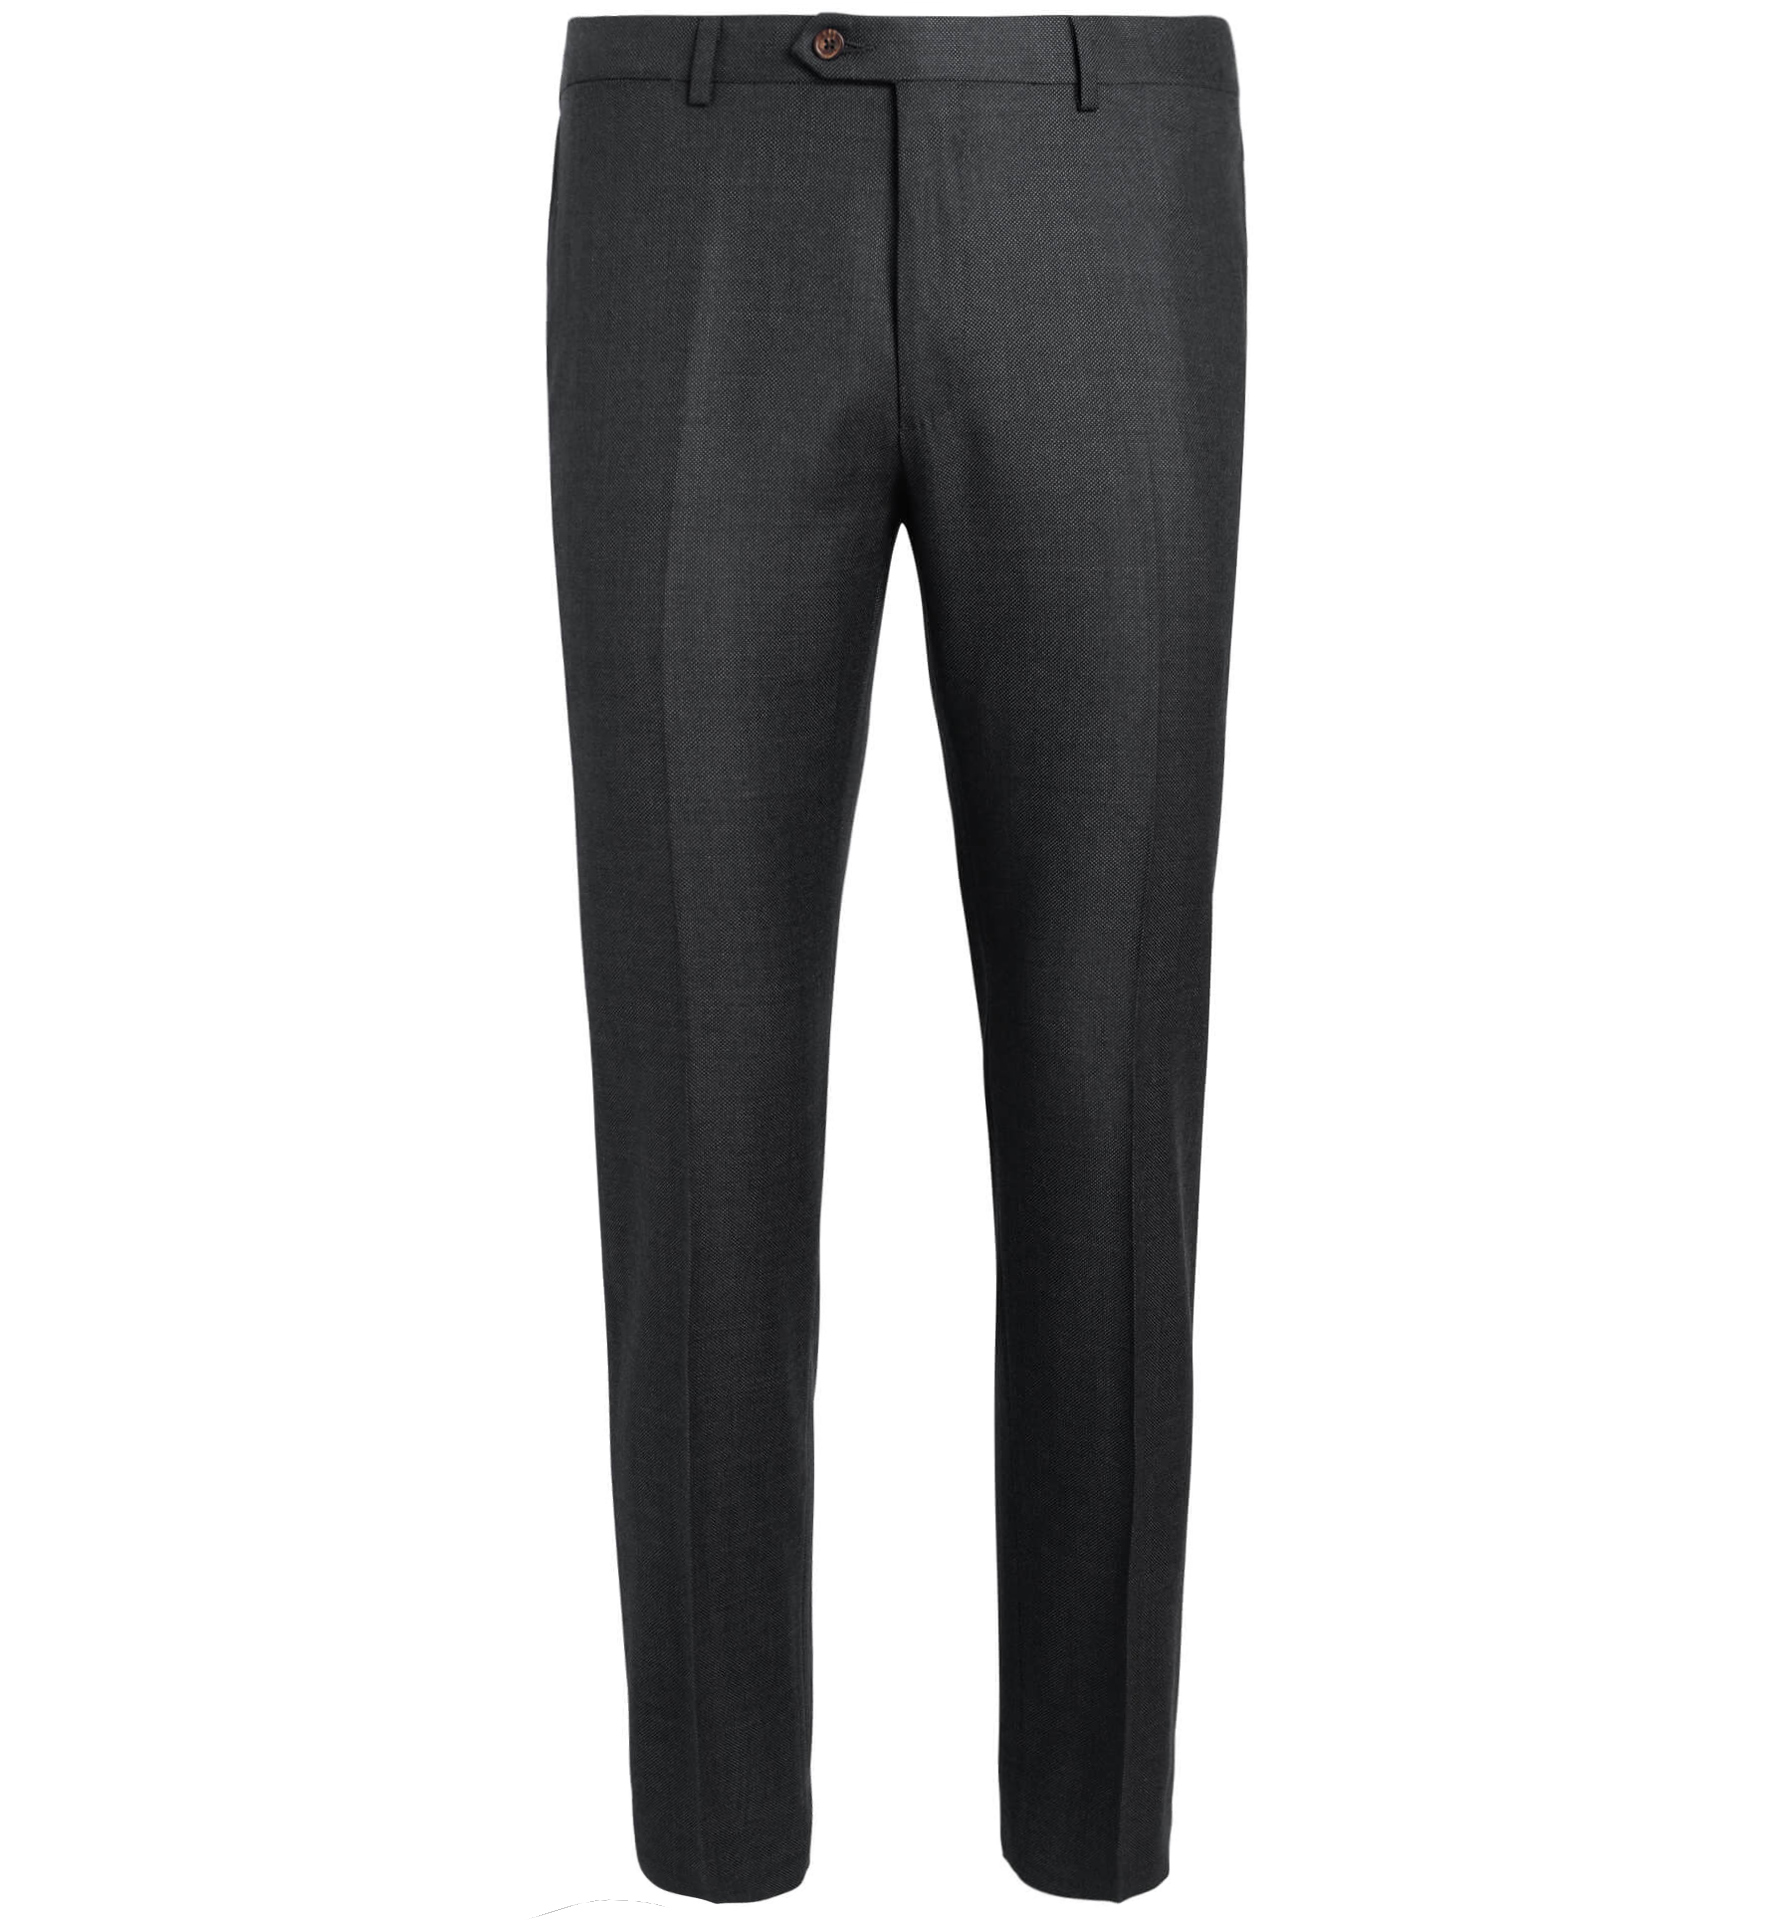 Zoom Image of Allen Grey S110s Nailhead Trouser